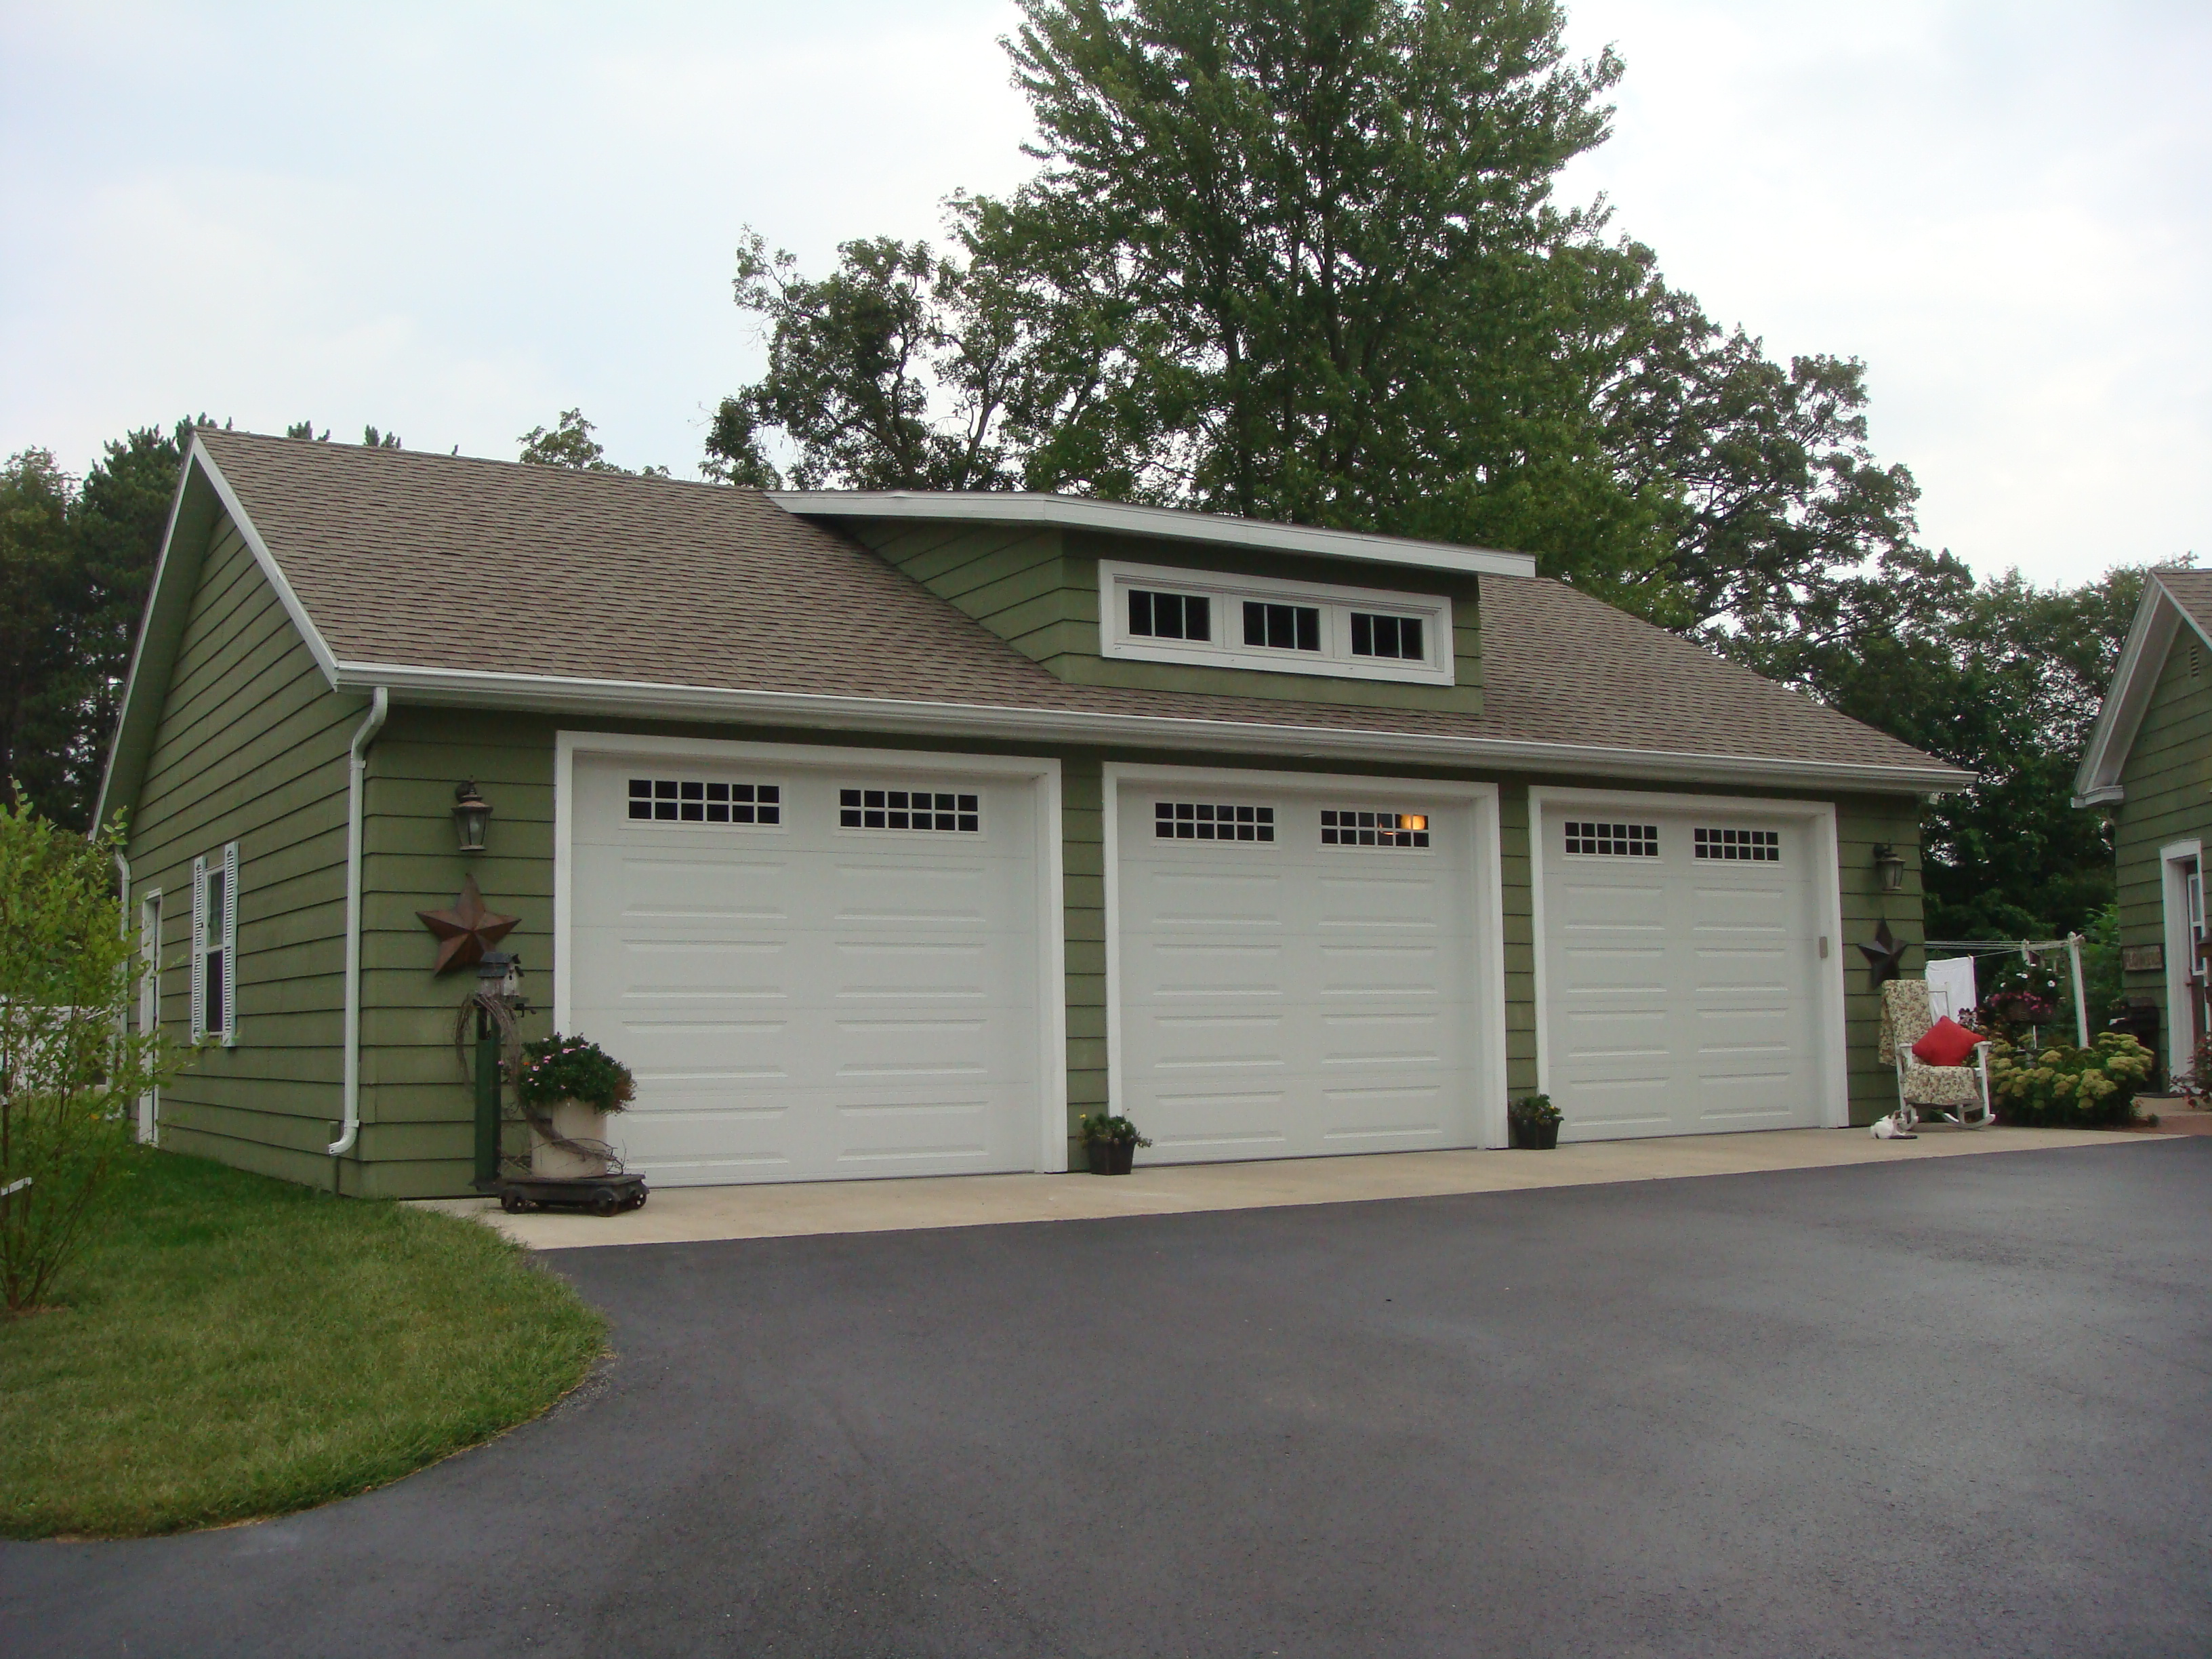 3 car garage w loft brian gorges construction llc for 2 5 car garage